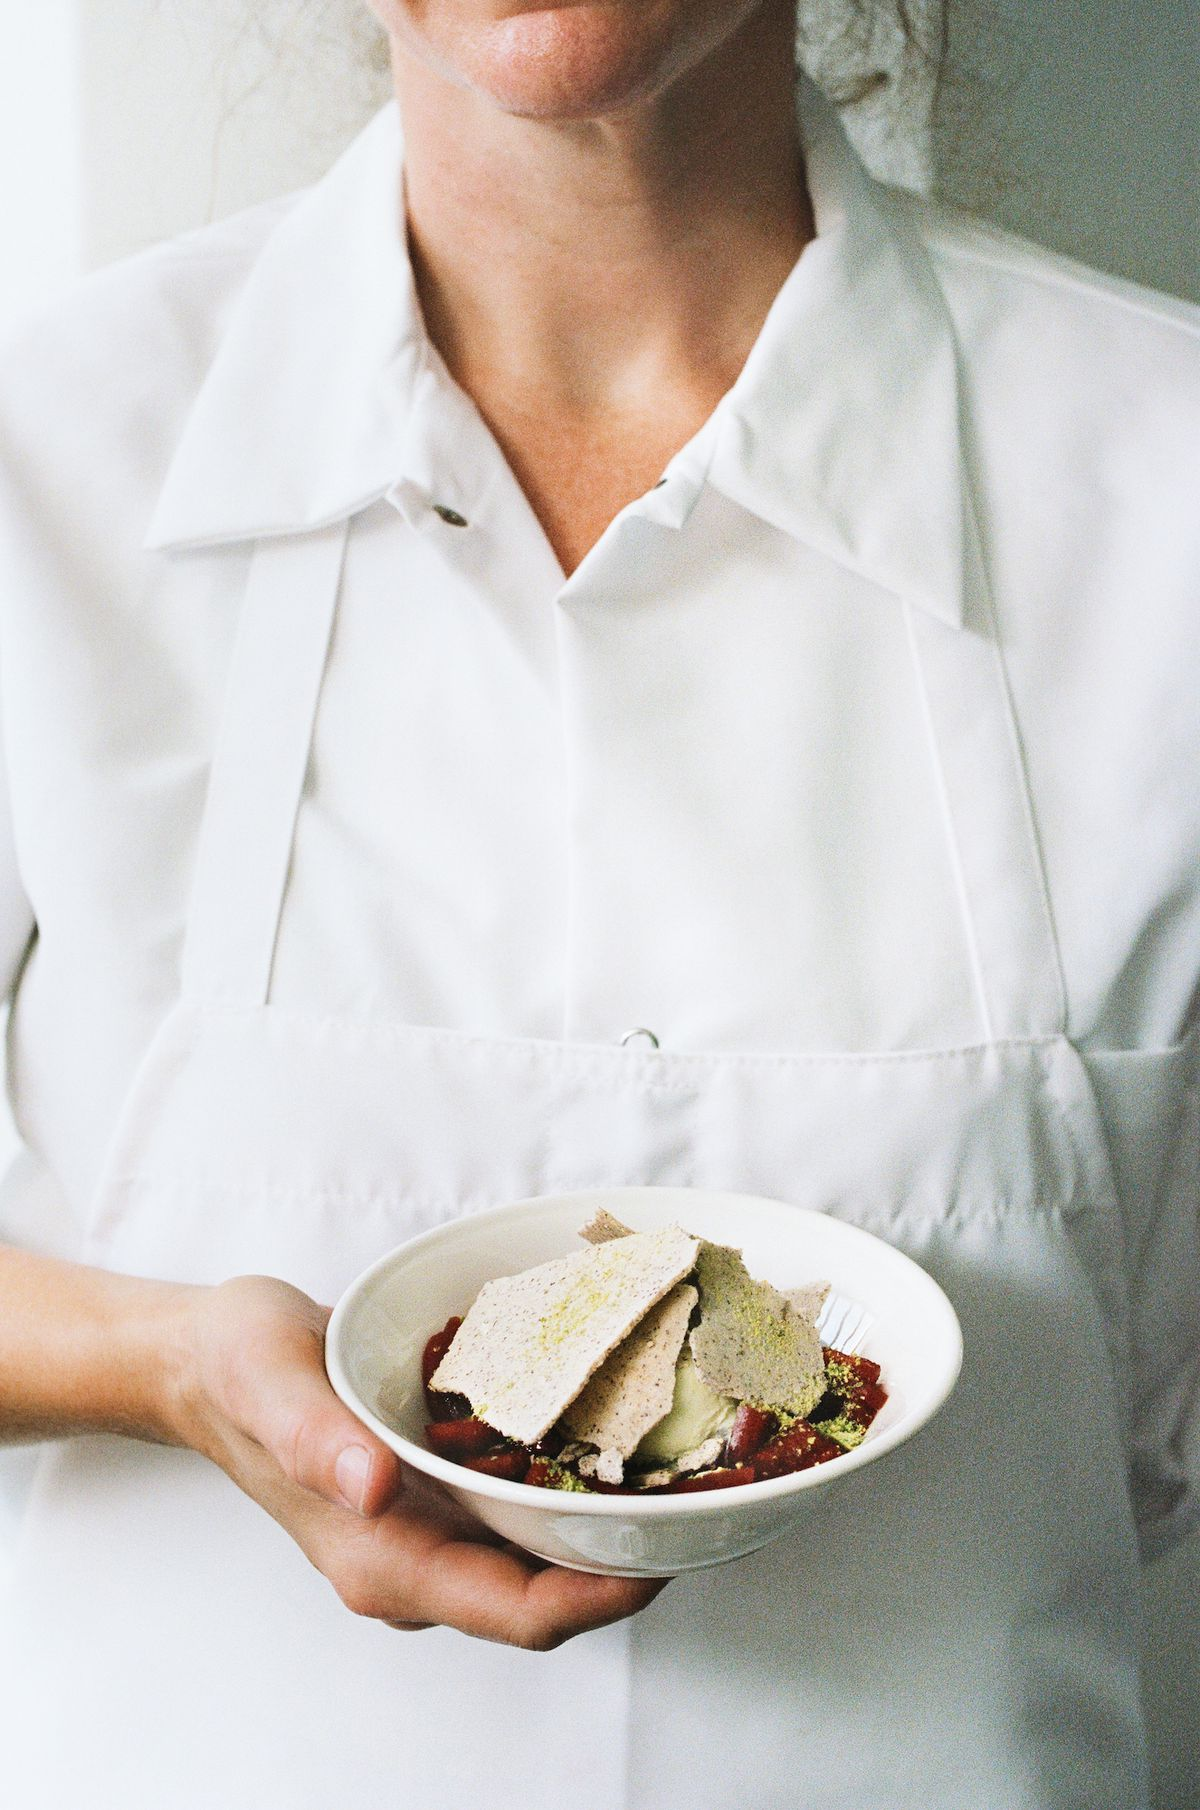 A worker in a white uniform holds a dessert in a bowl.